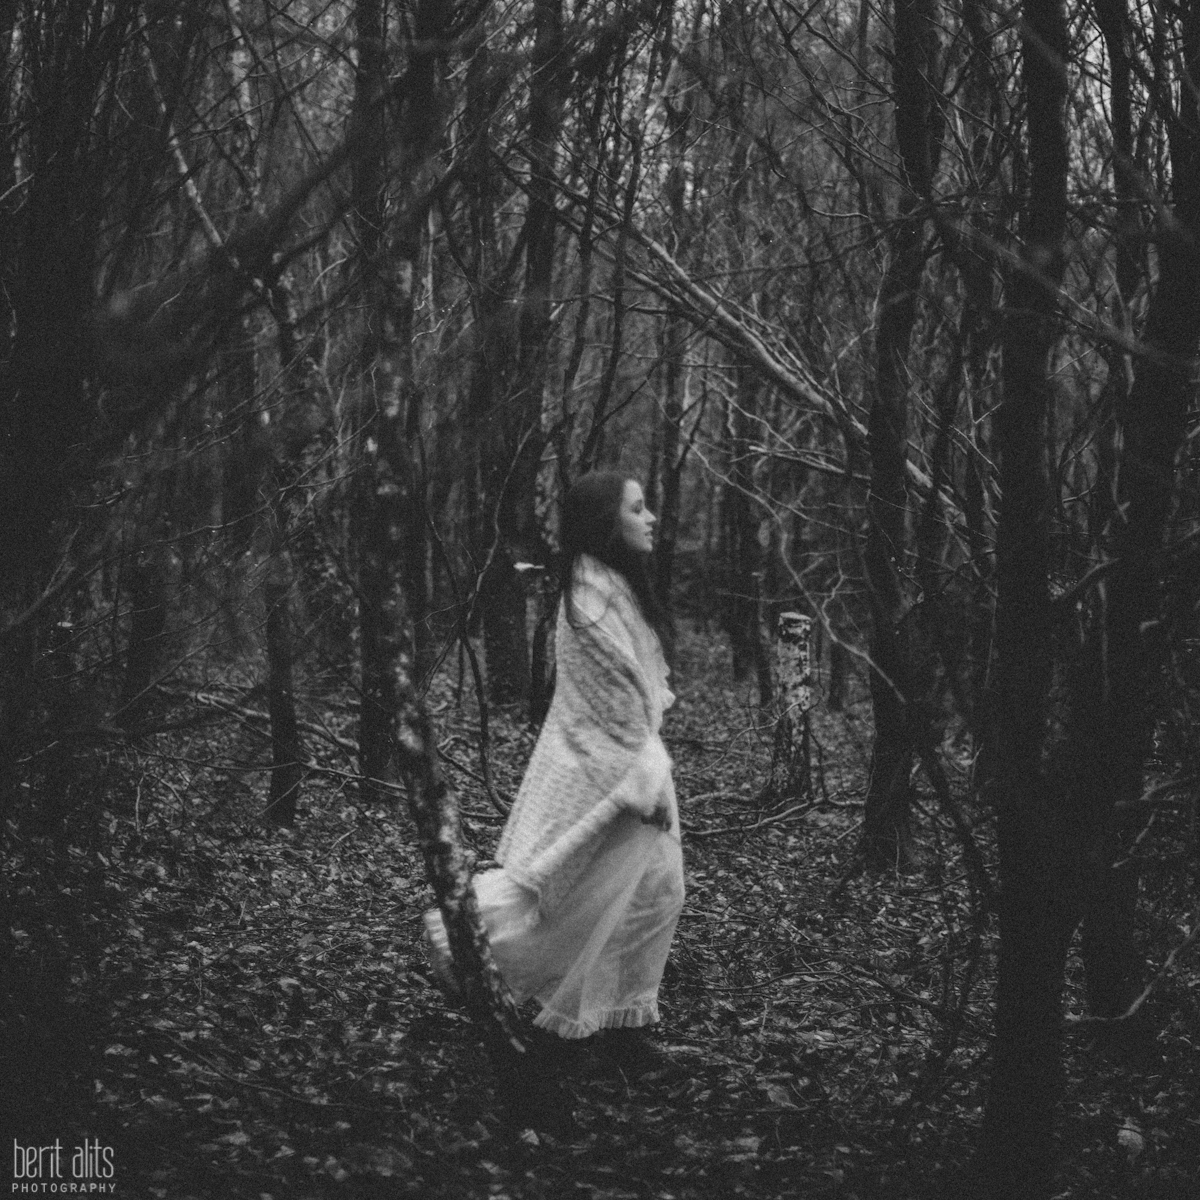 09_creative_portrait_forest_rainy_raindrops_winter_wet_day_long_hair_dress_lace_ethereal_dreamy_romantic_nikon_d800_50mm_natural_light_pose_posing_artistic_clonmel_ireland_tipperary_photography_photographer